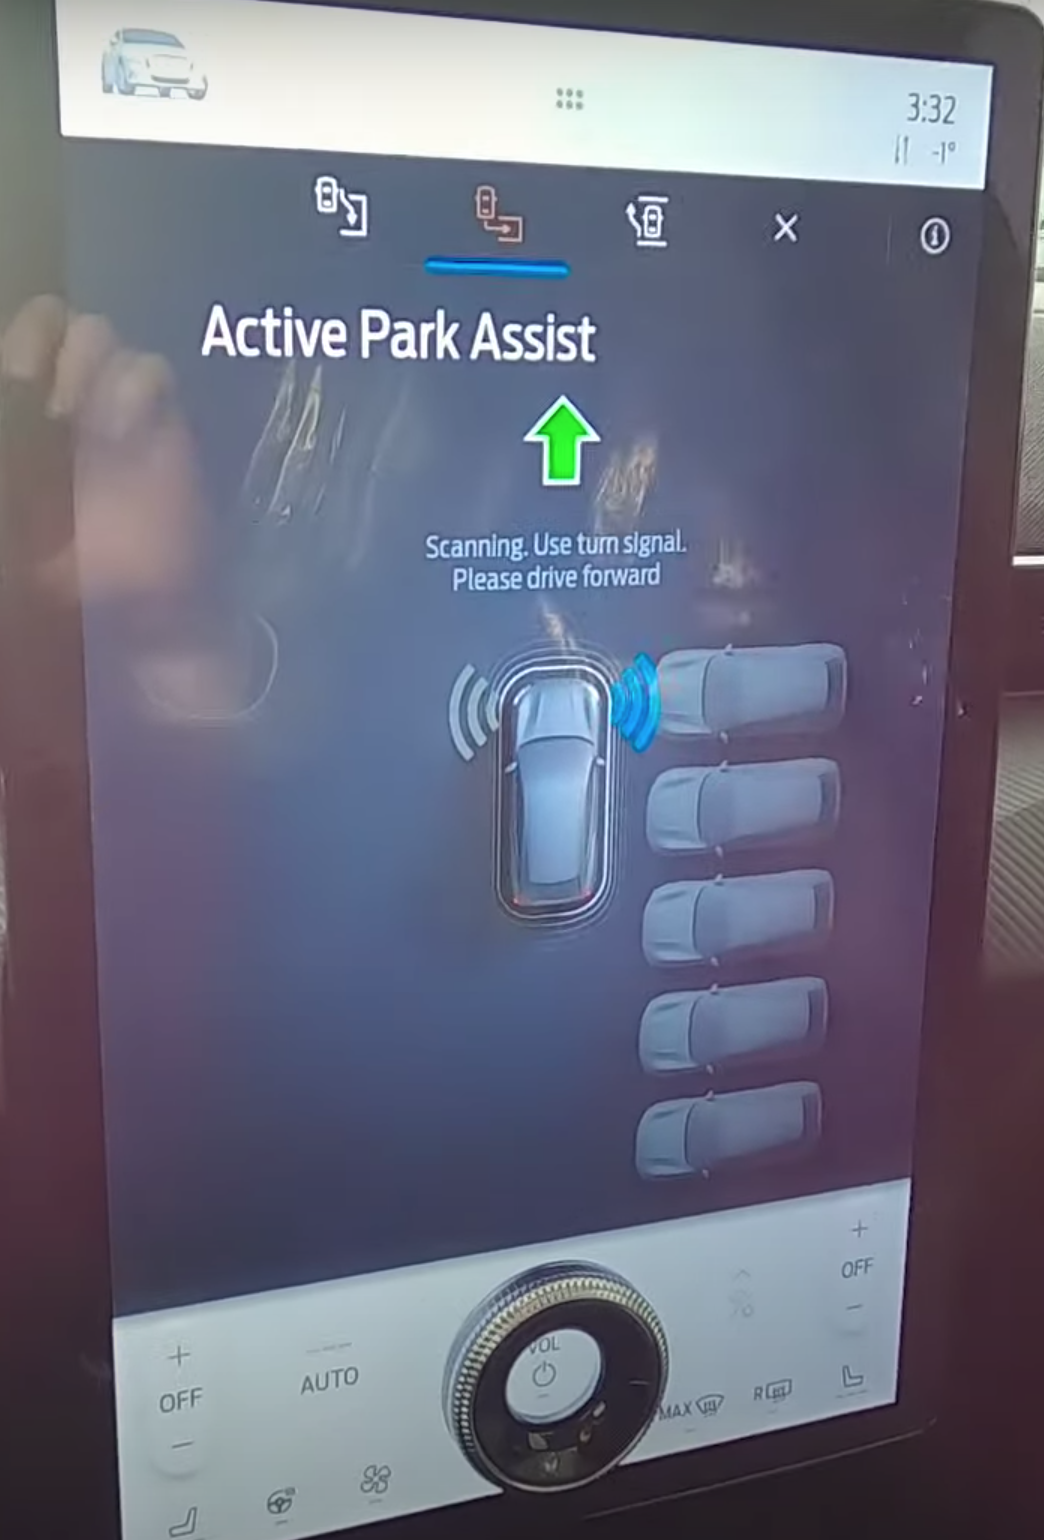 Active park assist page to guide a user from start to finish